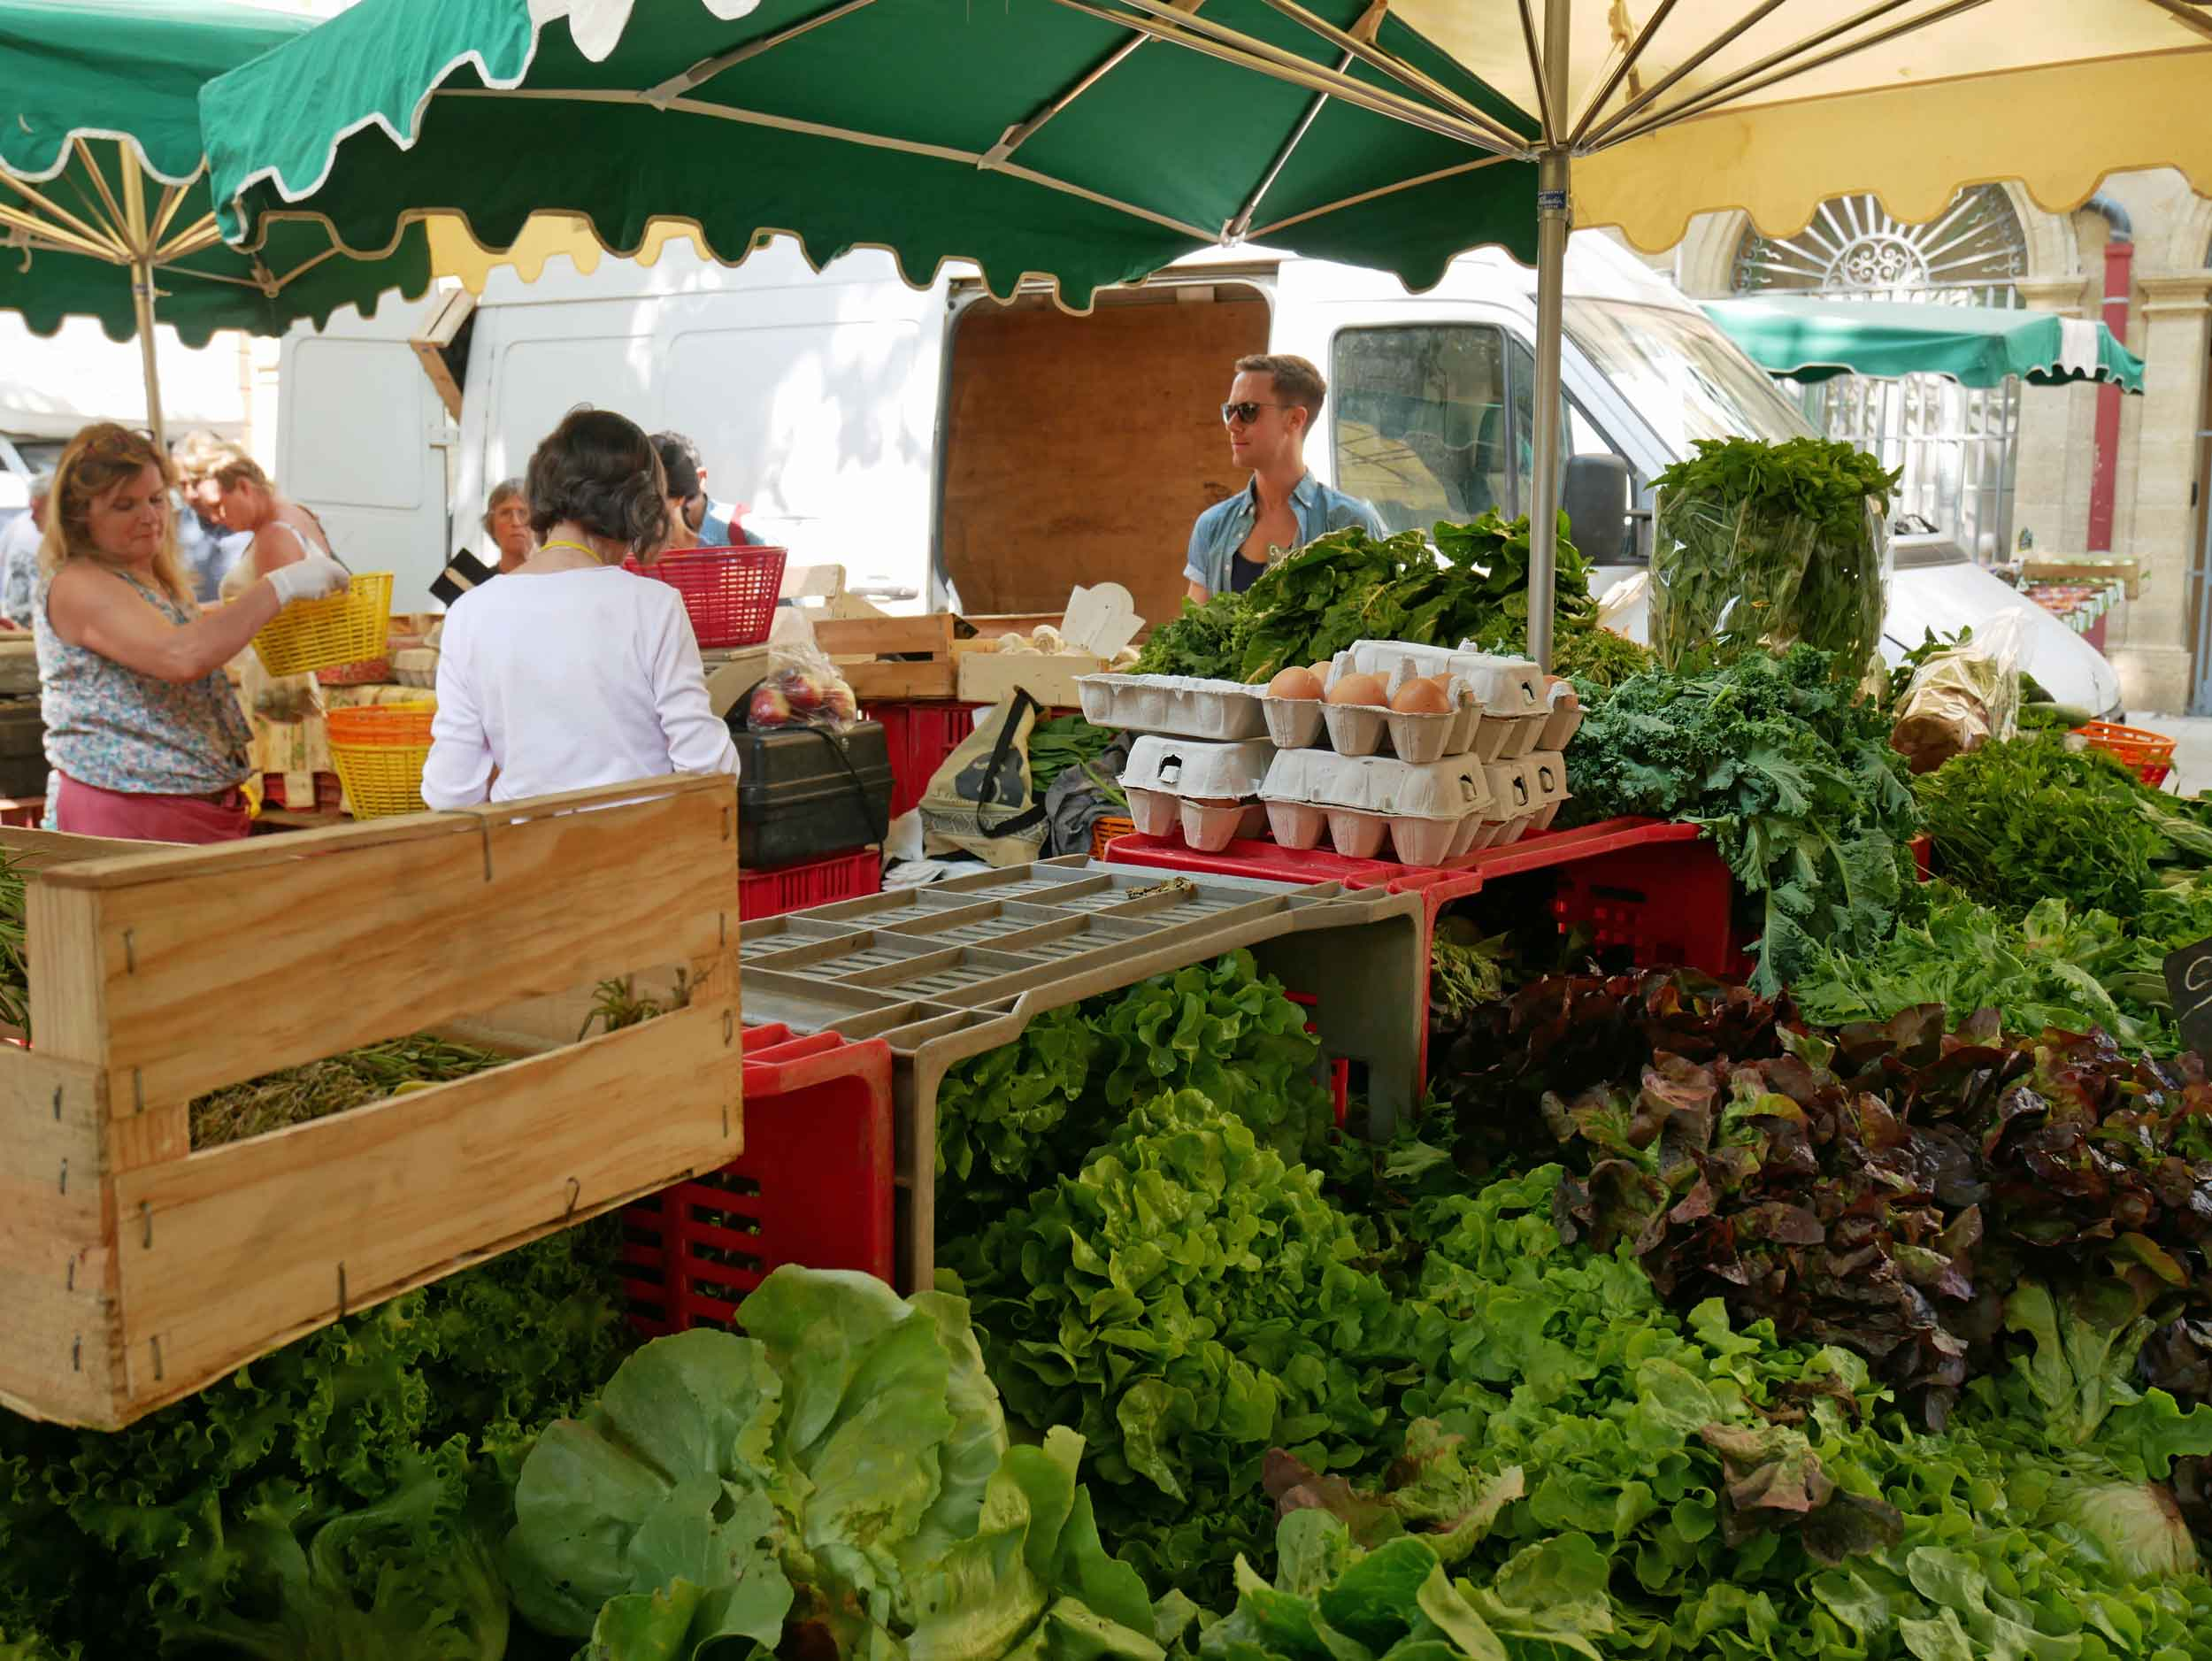 The main market, located at Place Richelme is now a daily market, while there are a few additional ones at Place de la Madeleine and Place de Precheurs,open on Tuesday, Thursday and Saturday – because everyday should be market day!